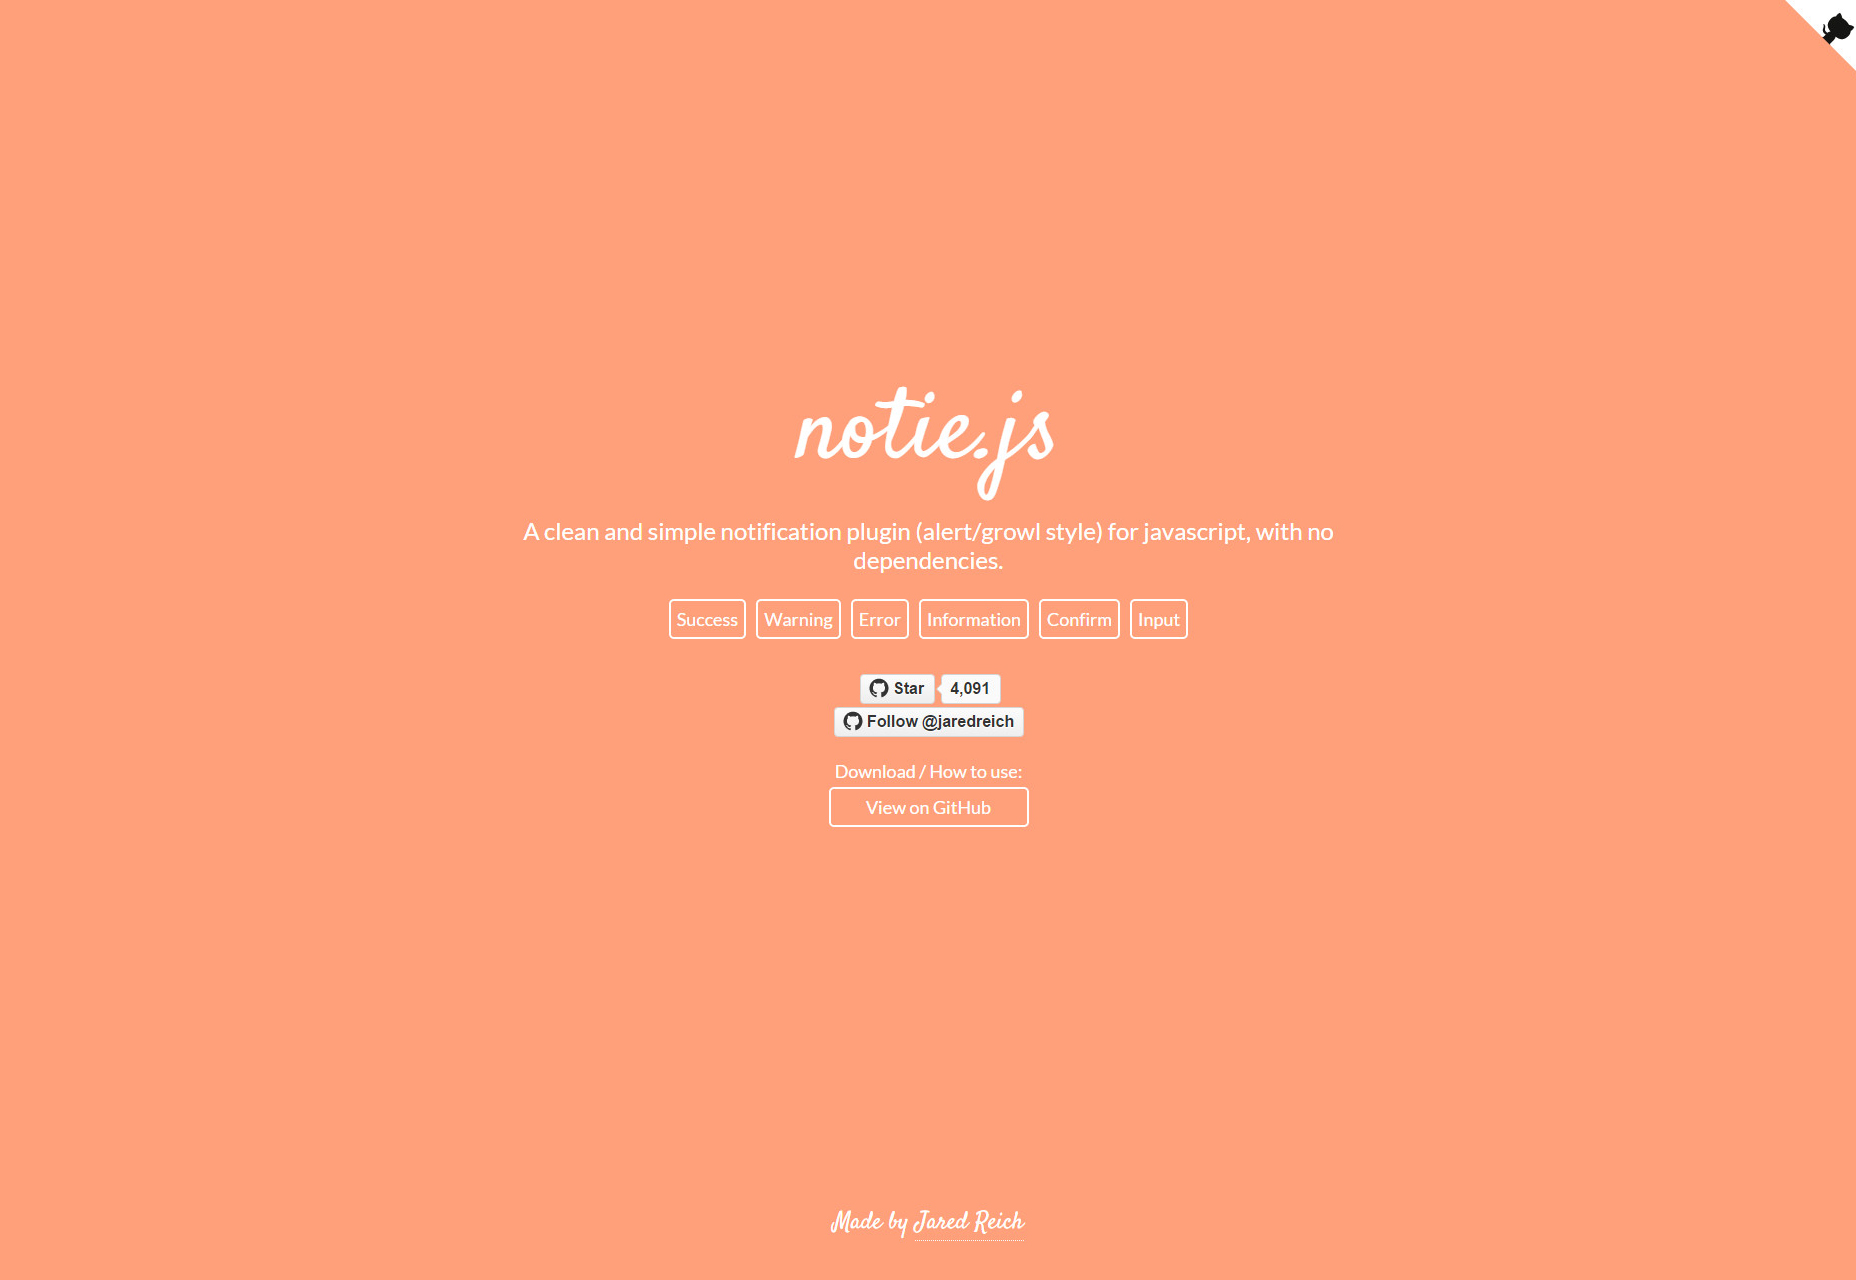 Notie.js: Simple Dependency-less Notification Plugin